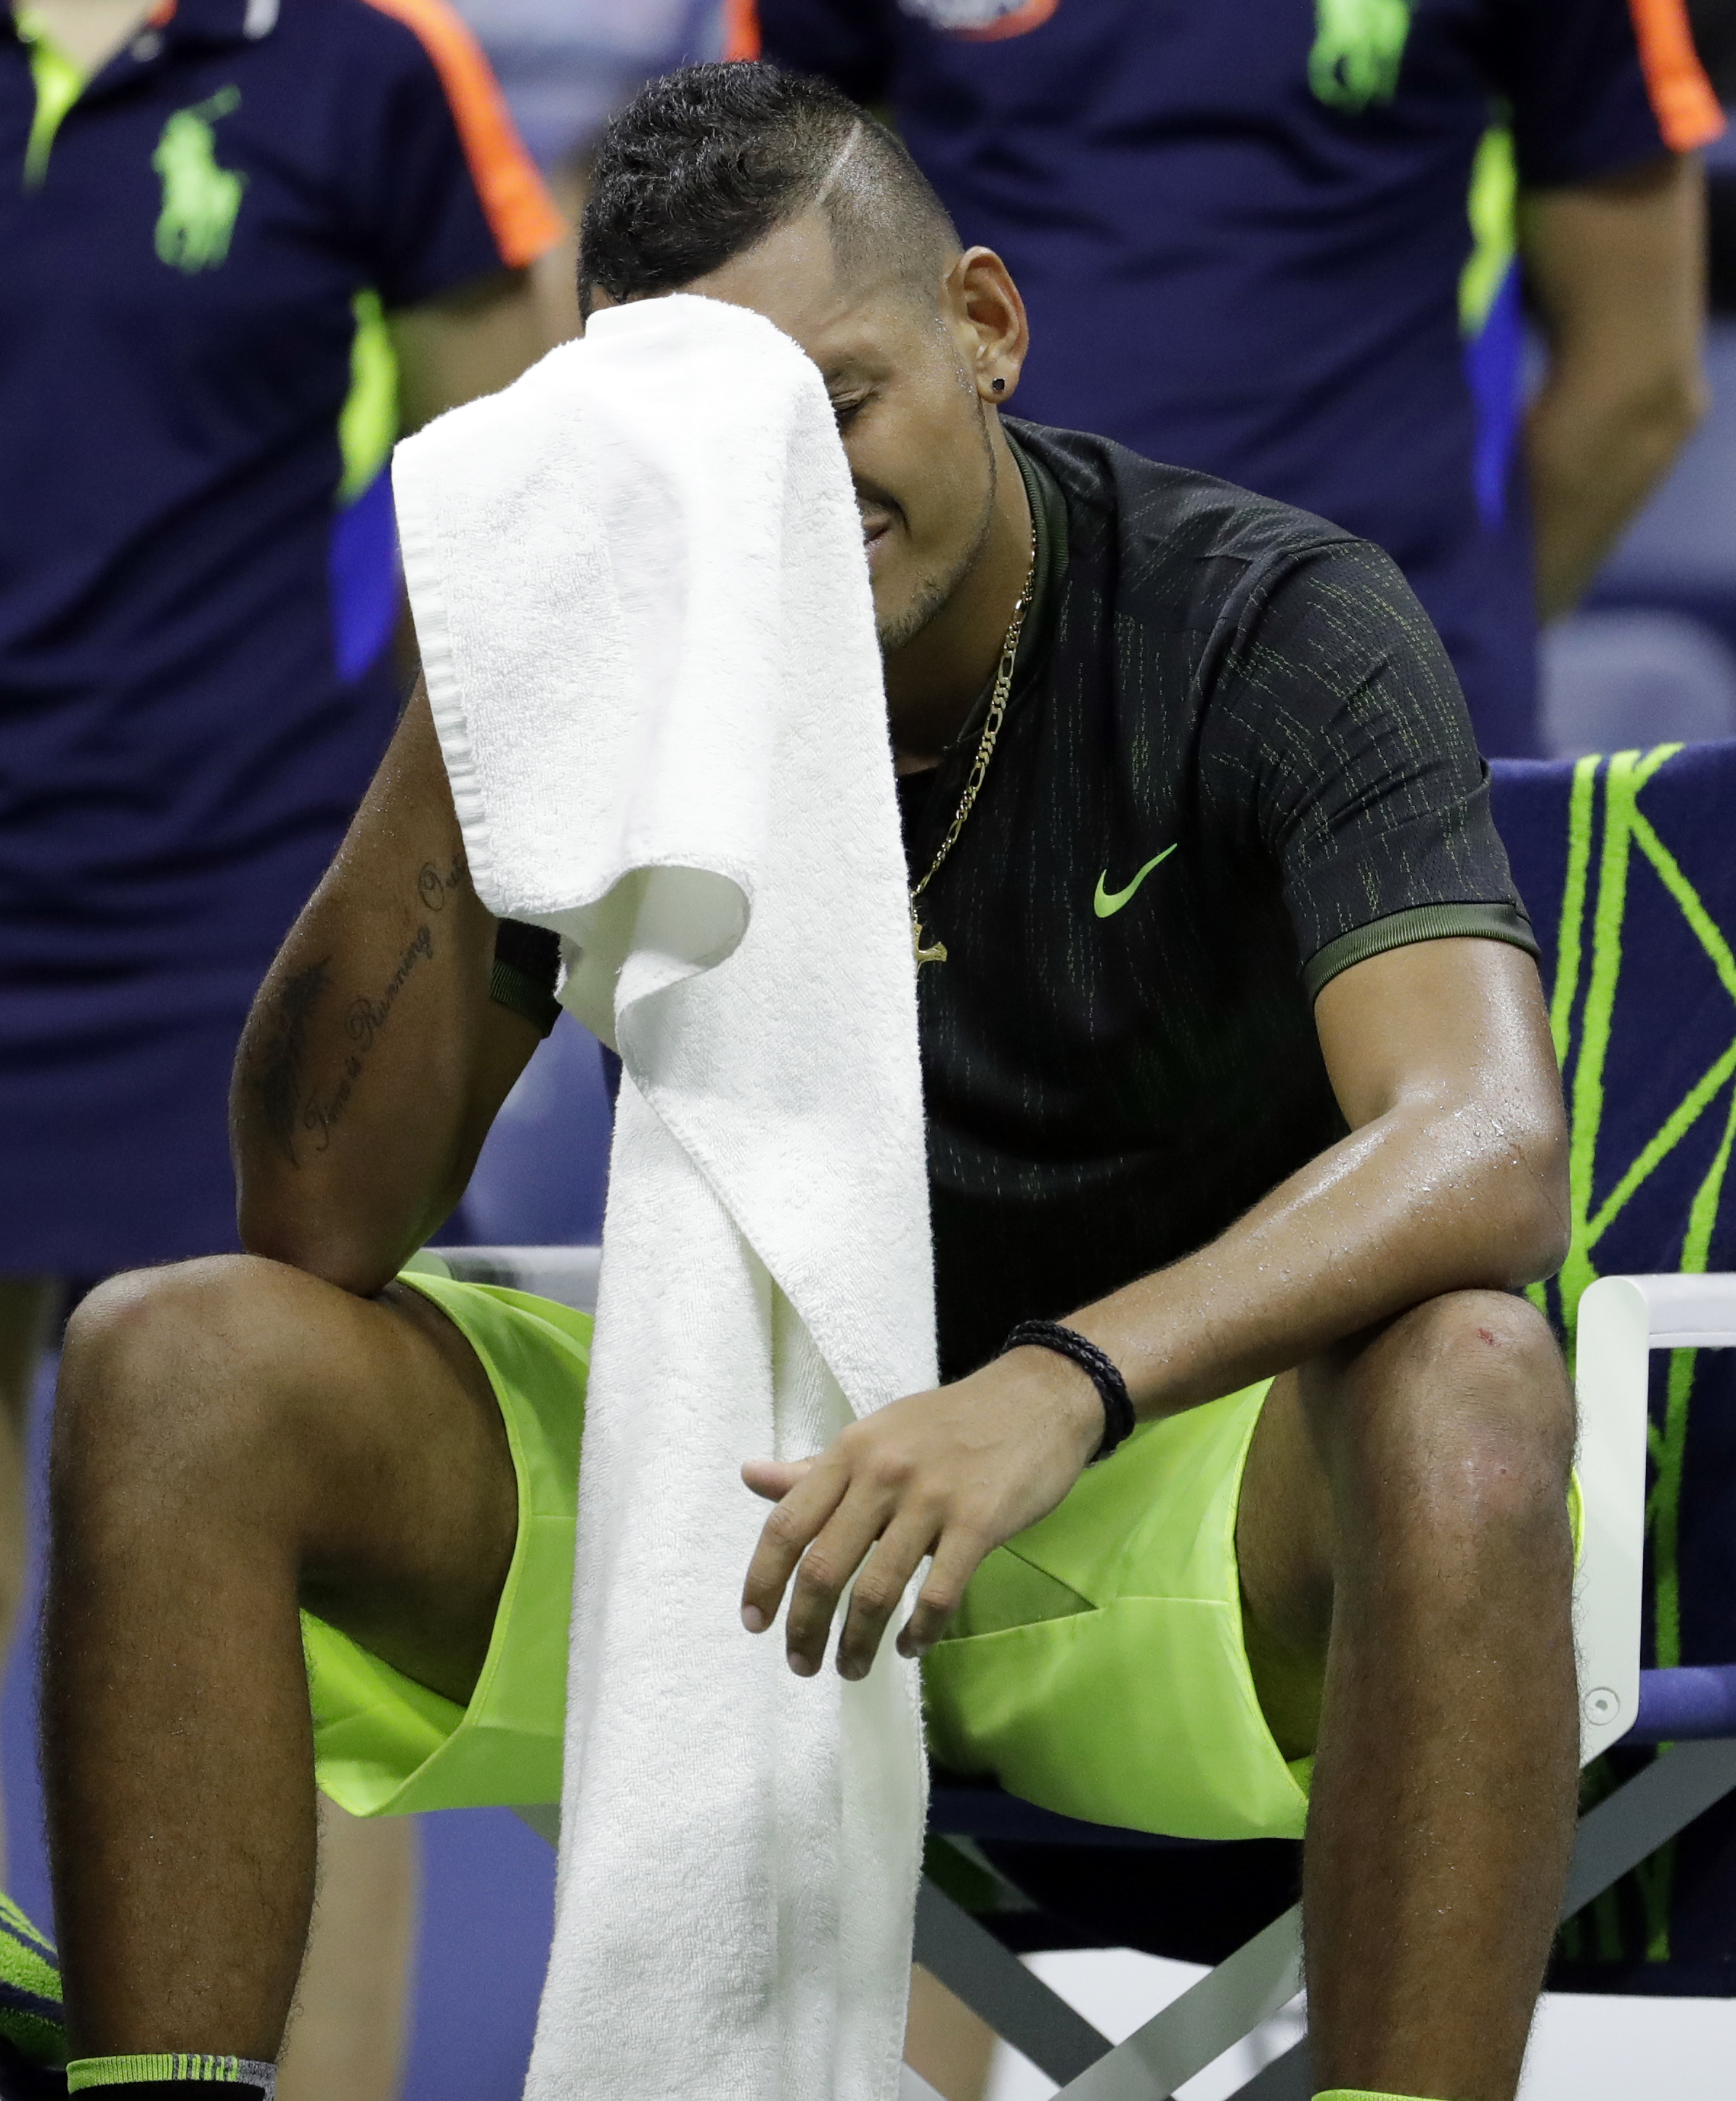 Nick Kyrgios, of Australia, sits in his chair between games against Illya Marchenko, of Ukraine, during the U.S. Open tennis tournament, Saturday, Sept. 3, 2016, in New York. (AP Photo/Julio Cortez)